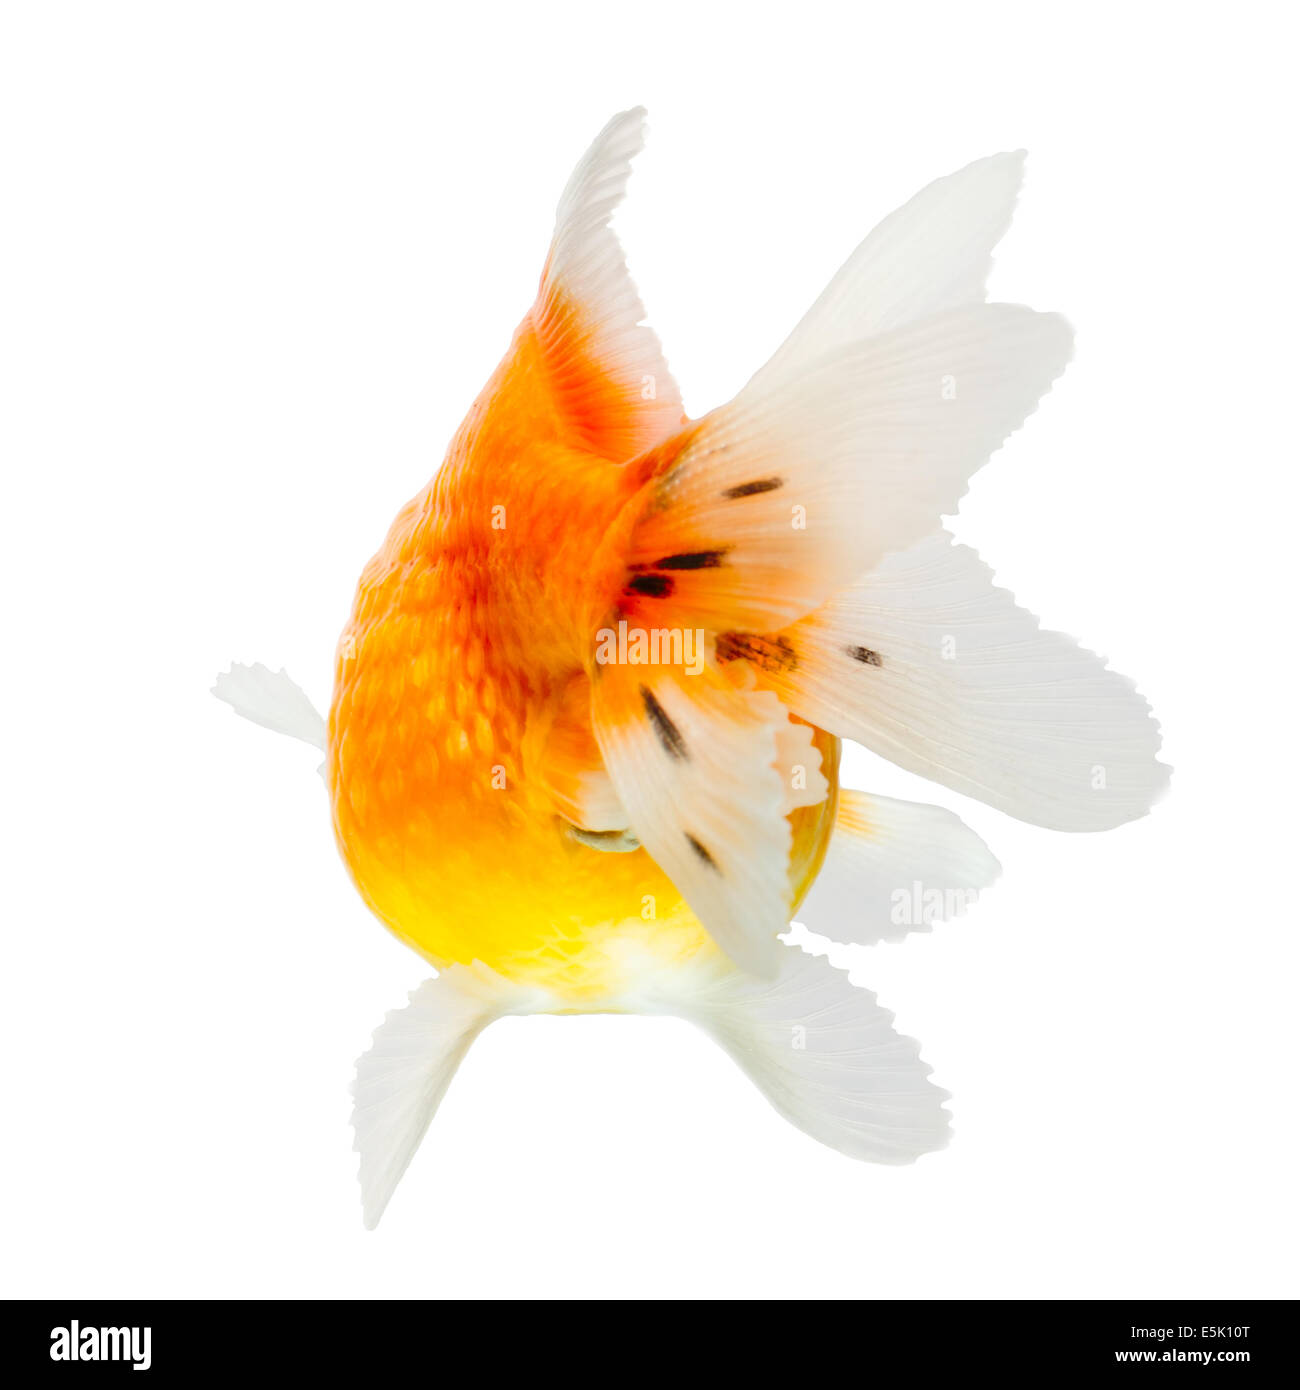 Pearlscale Goldfish Isolated On White High Quality Studio Shot Manually Removed From Background So The Finnage Is Stock Photo